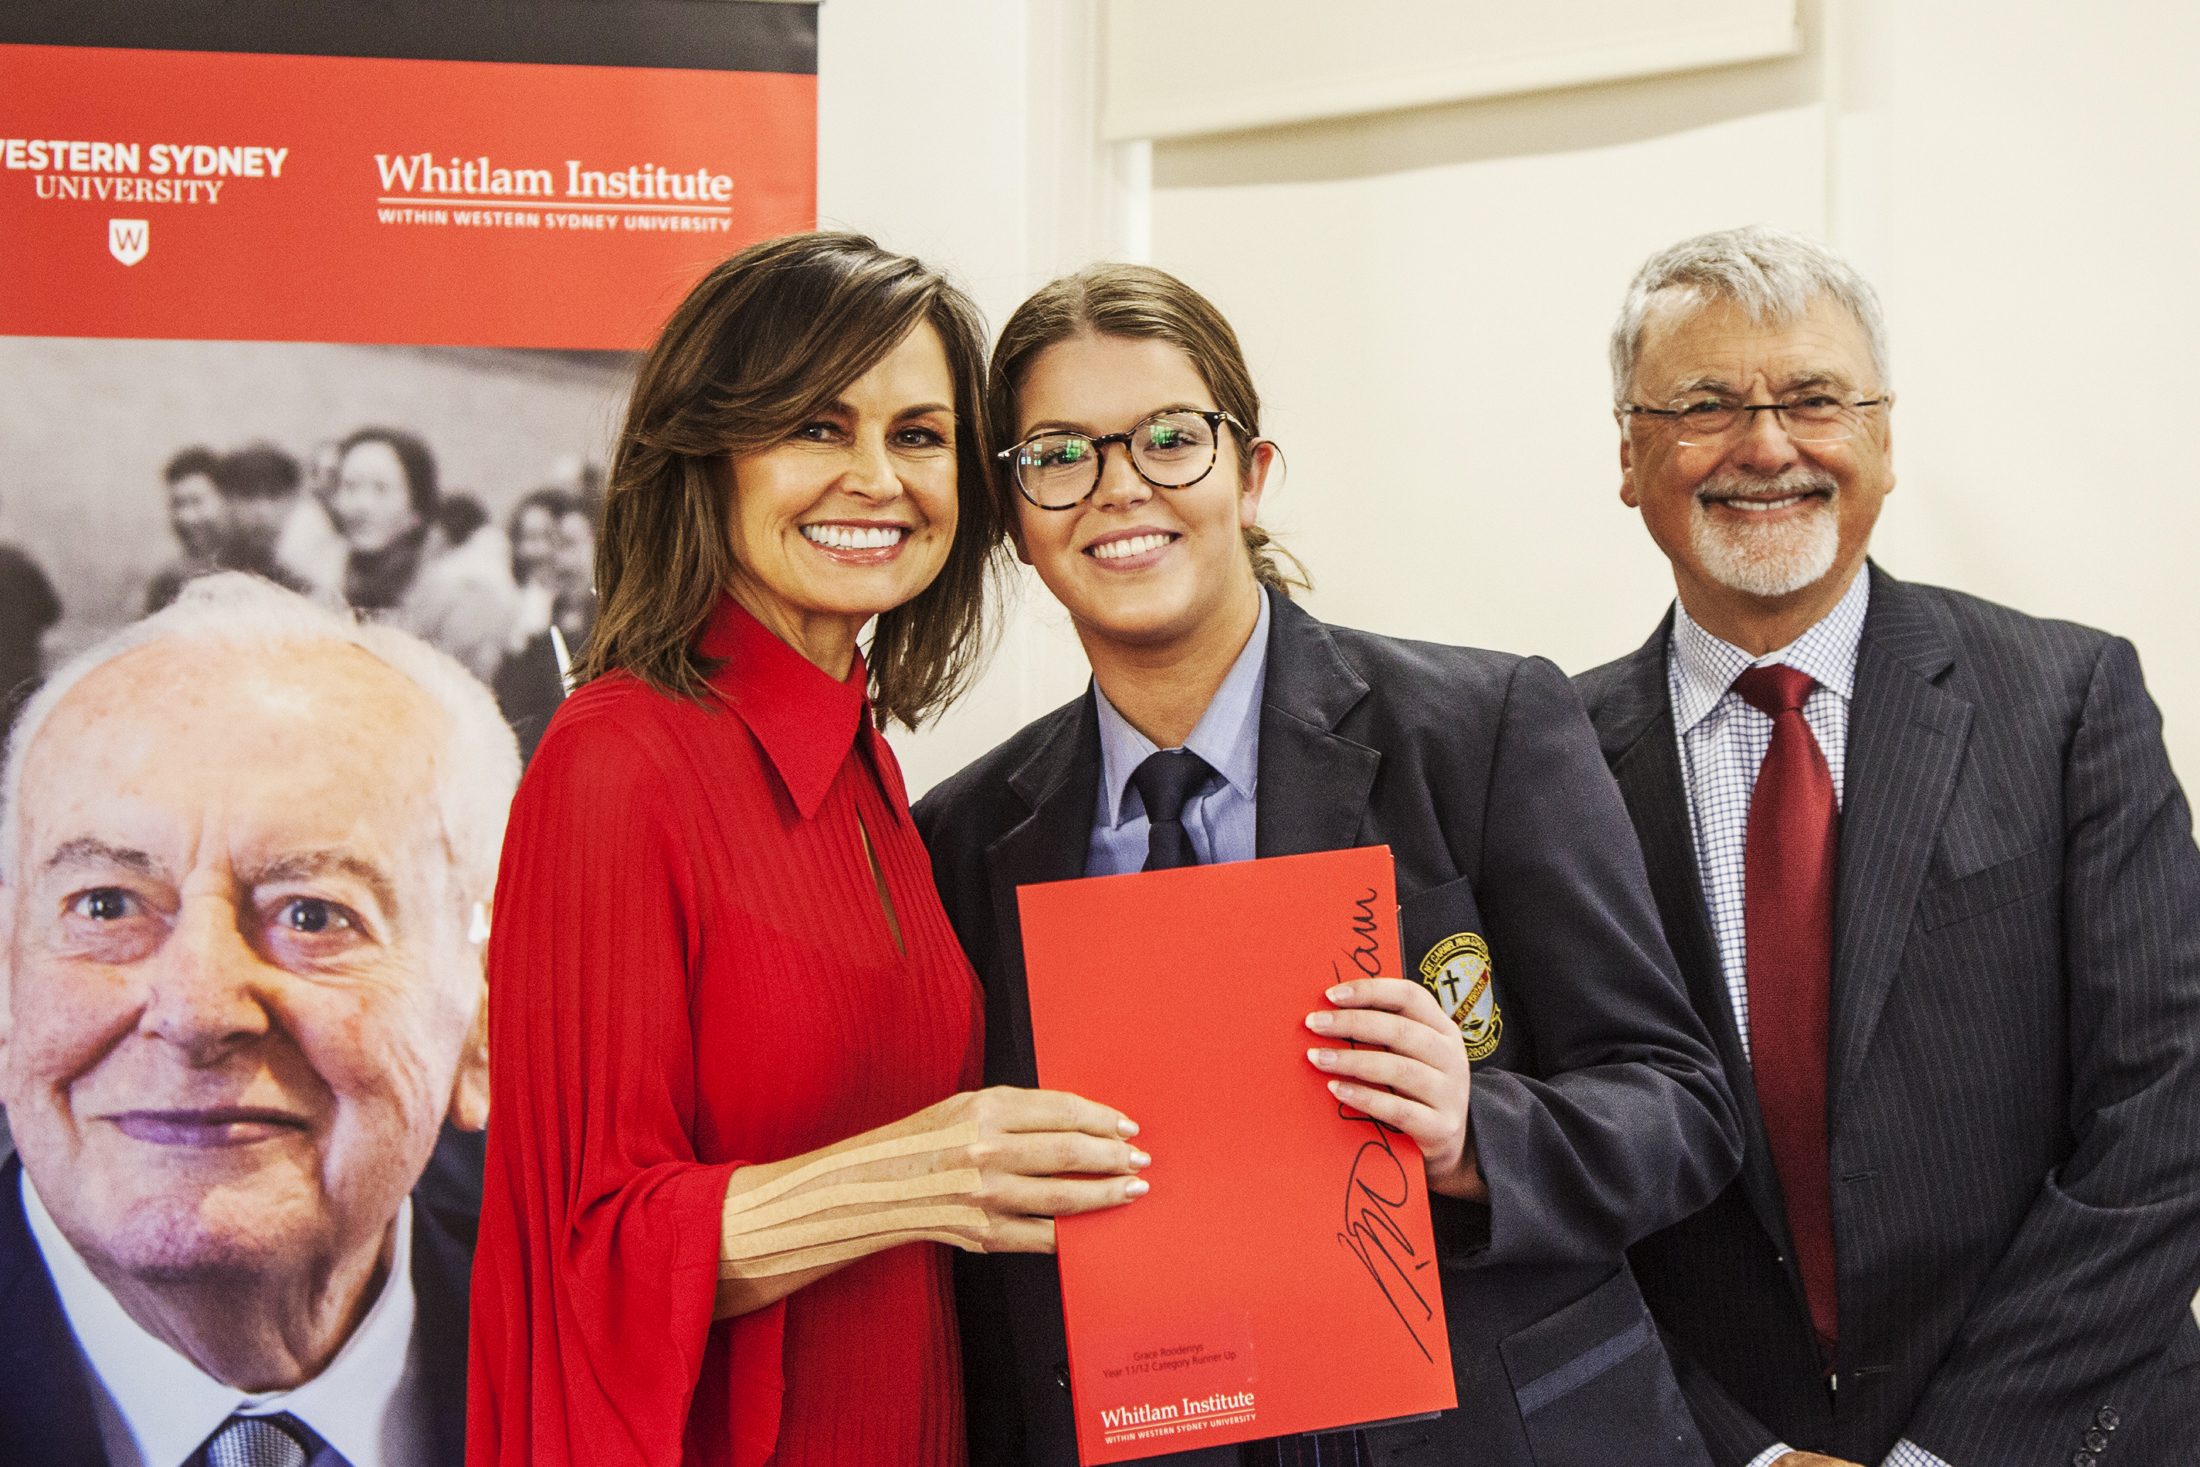 whitlam essay competition For instance, an achievement which i believe does justice to demonstrating my competence in english, is winning the yr9/10 category, 2016 whitlam's institute's what matters essay writing competition.